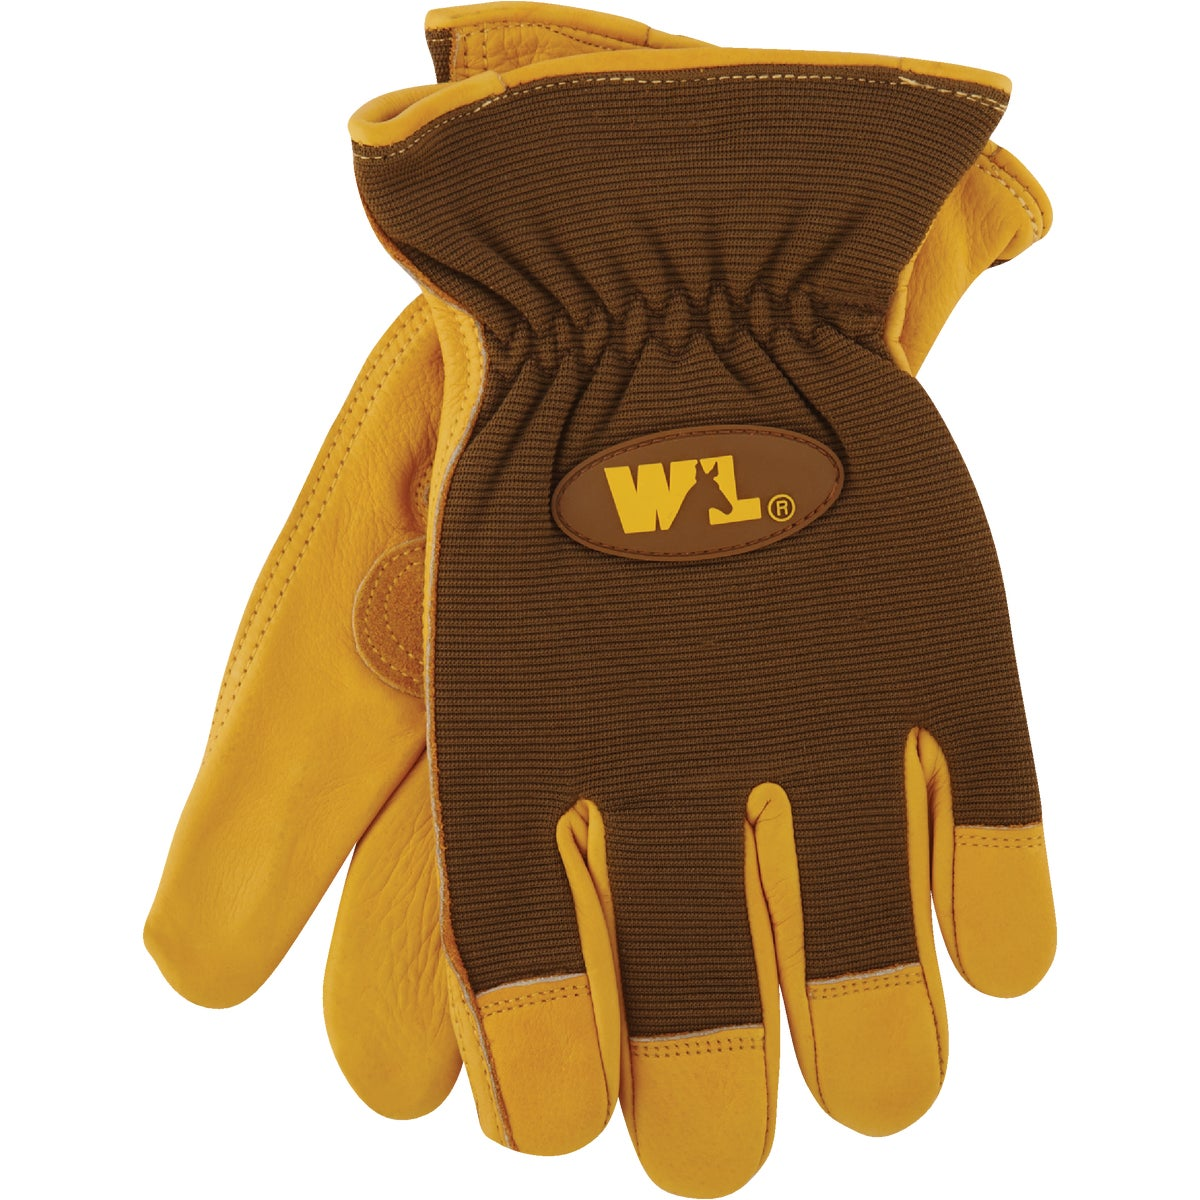 LRG HD COWHID LTHR GLOVE - 1106L by Wells Lamont